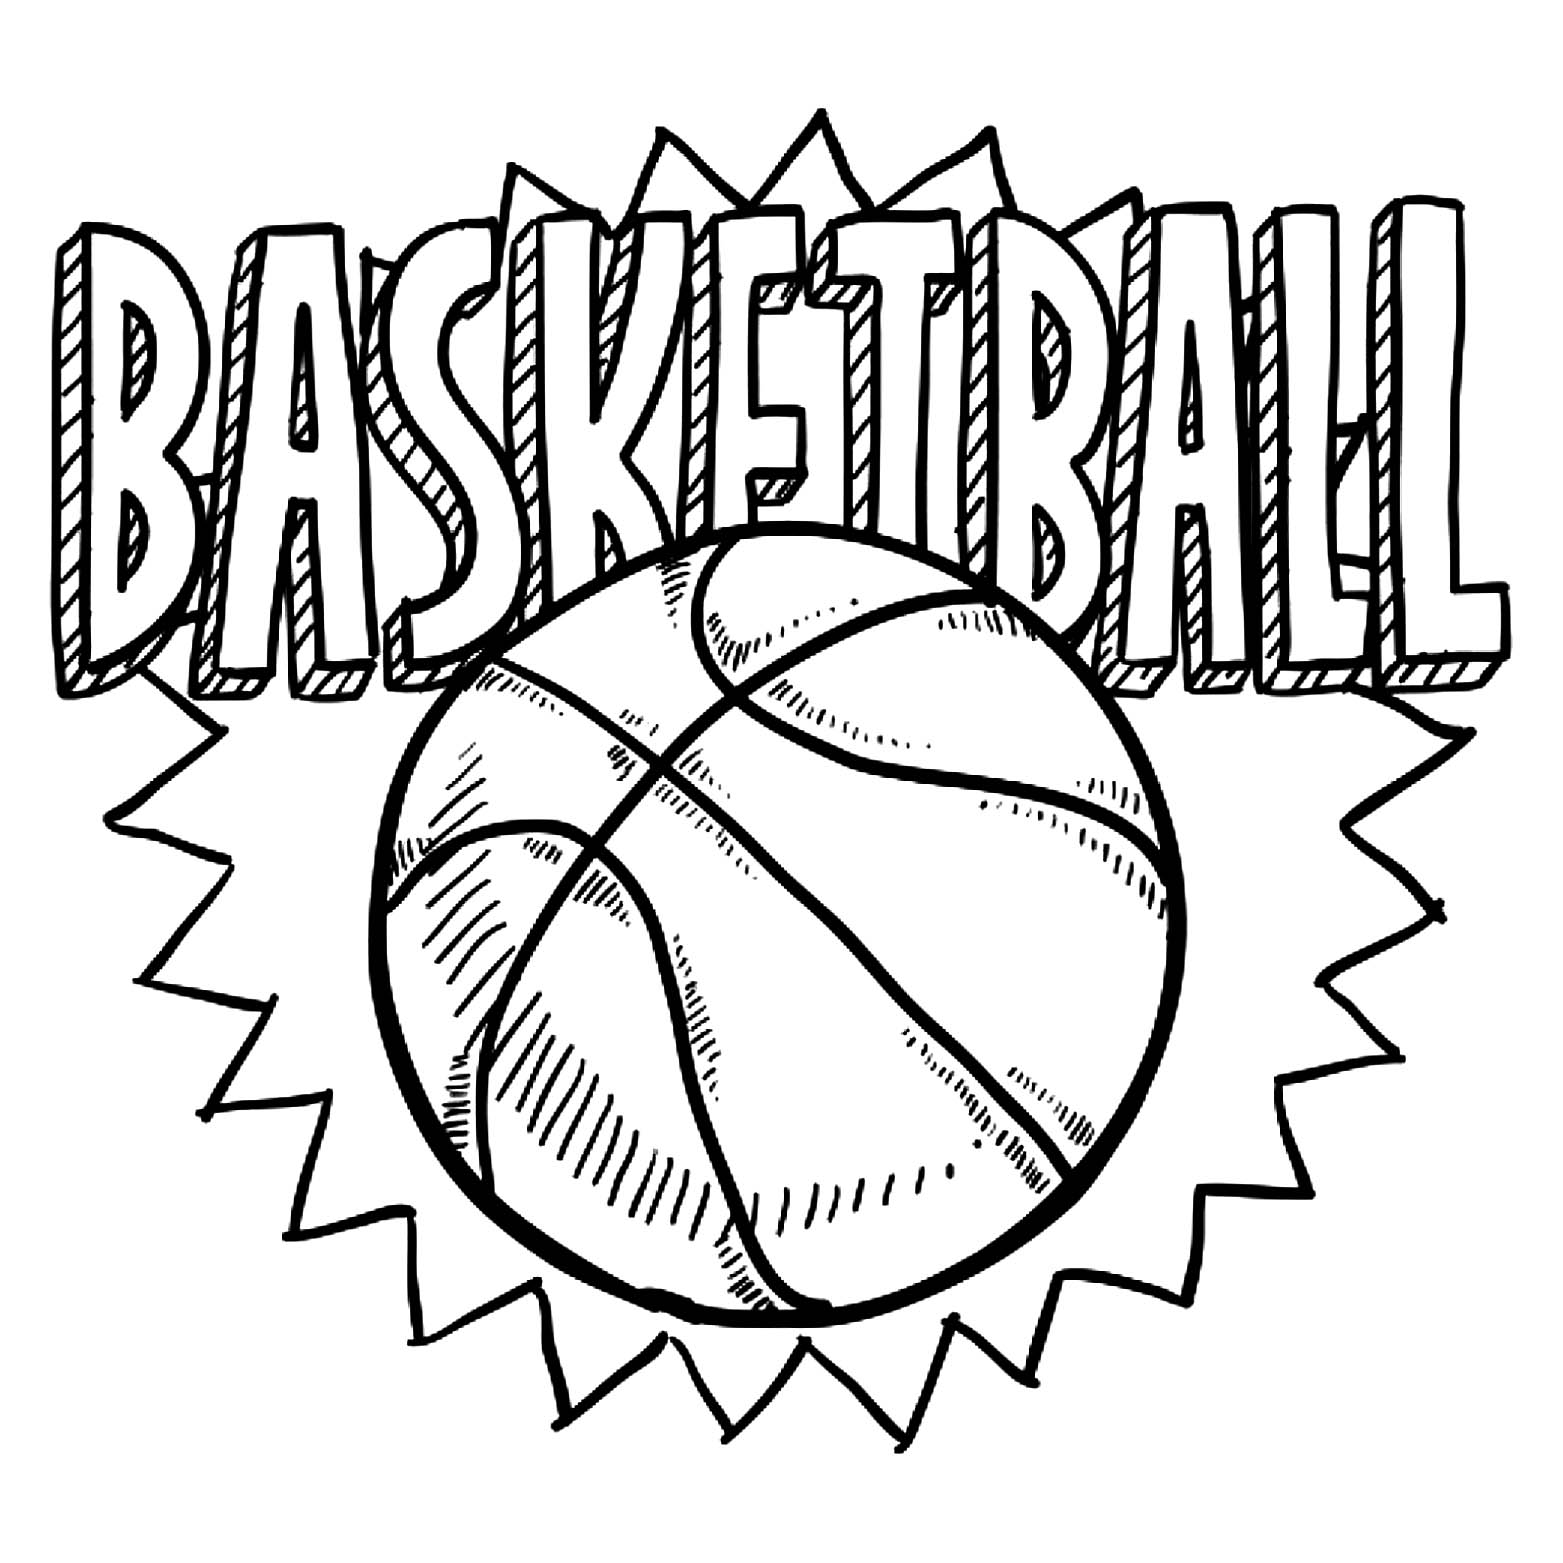 coloring pages of basketball basketball for children basketball kids coloring pages basketball pages of coloring